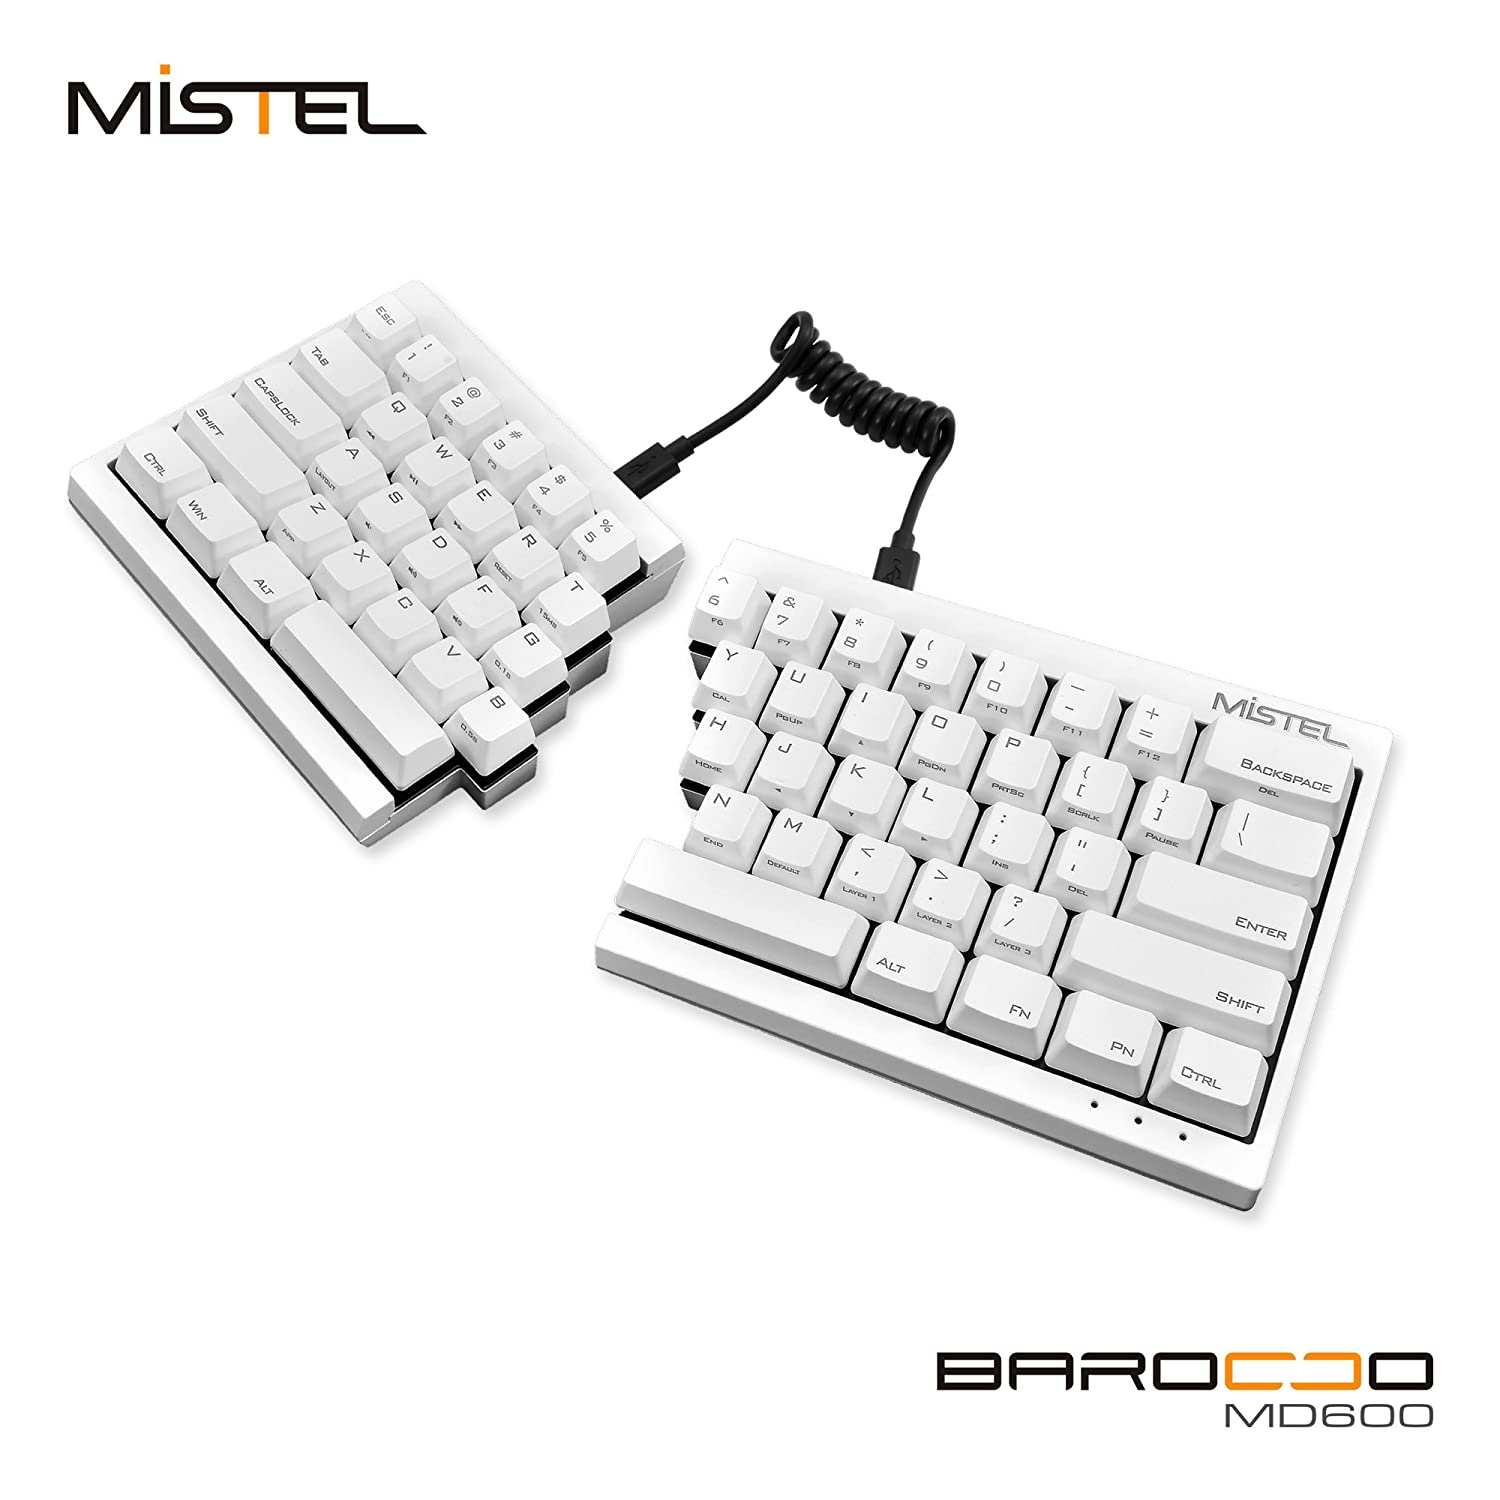 Amazon mechanical keyboard - Amazon Com Mistel Barocco Ergonomic Split Pbt Mechanical Keyboard With Cherry Mx Brown Switches White Computers Accessories